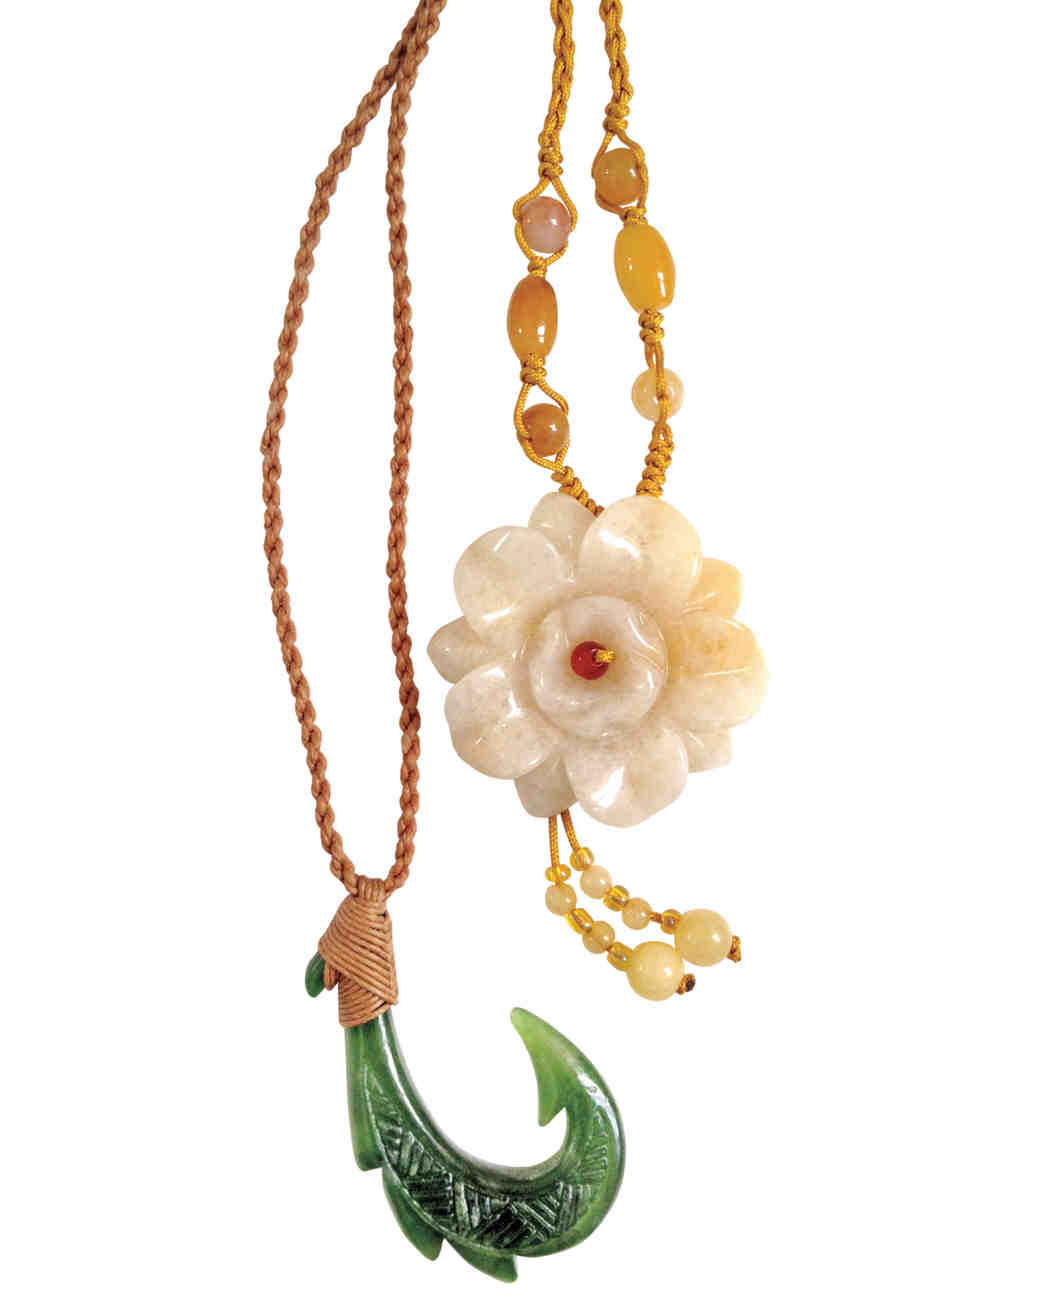 jade-necklace-mds108478.jpg